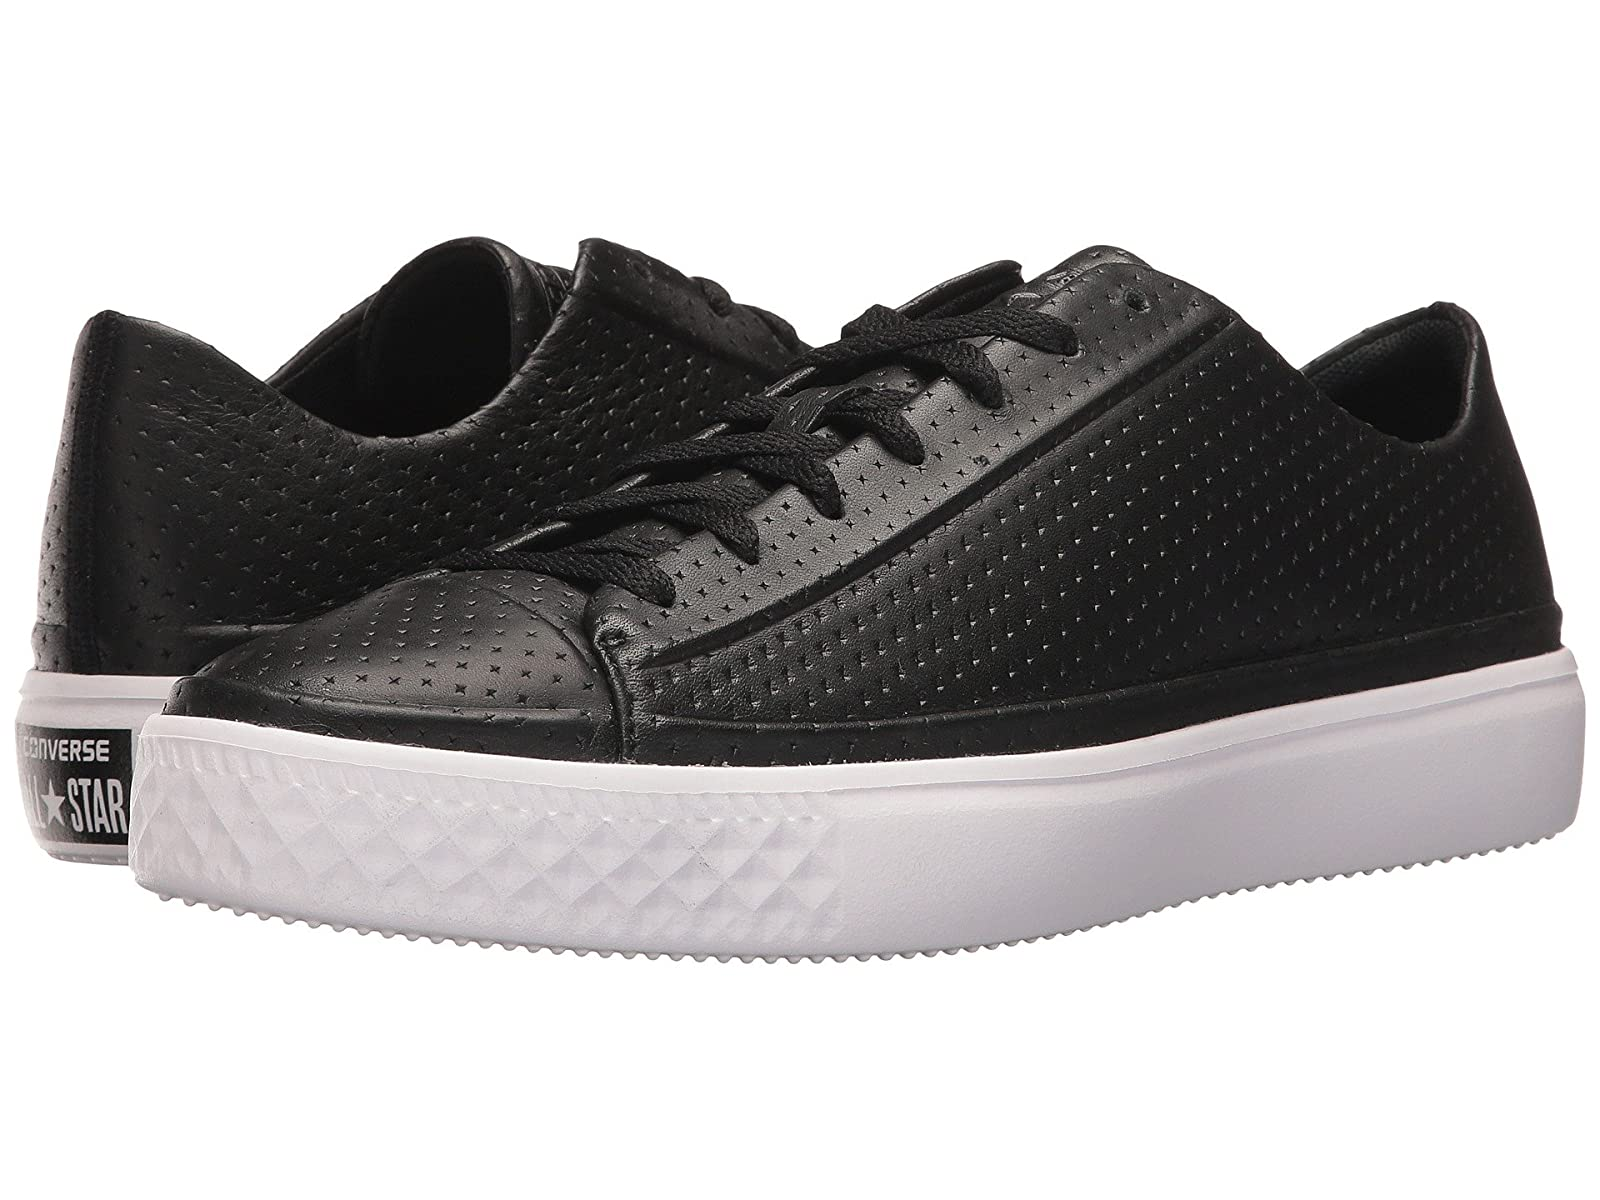 Converse Chuck Taylor All Star Modern Perforated LeatherCheap and distinctive eye-catching shoes